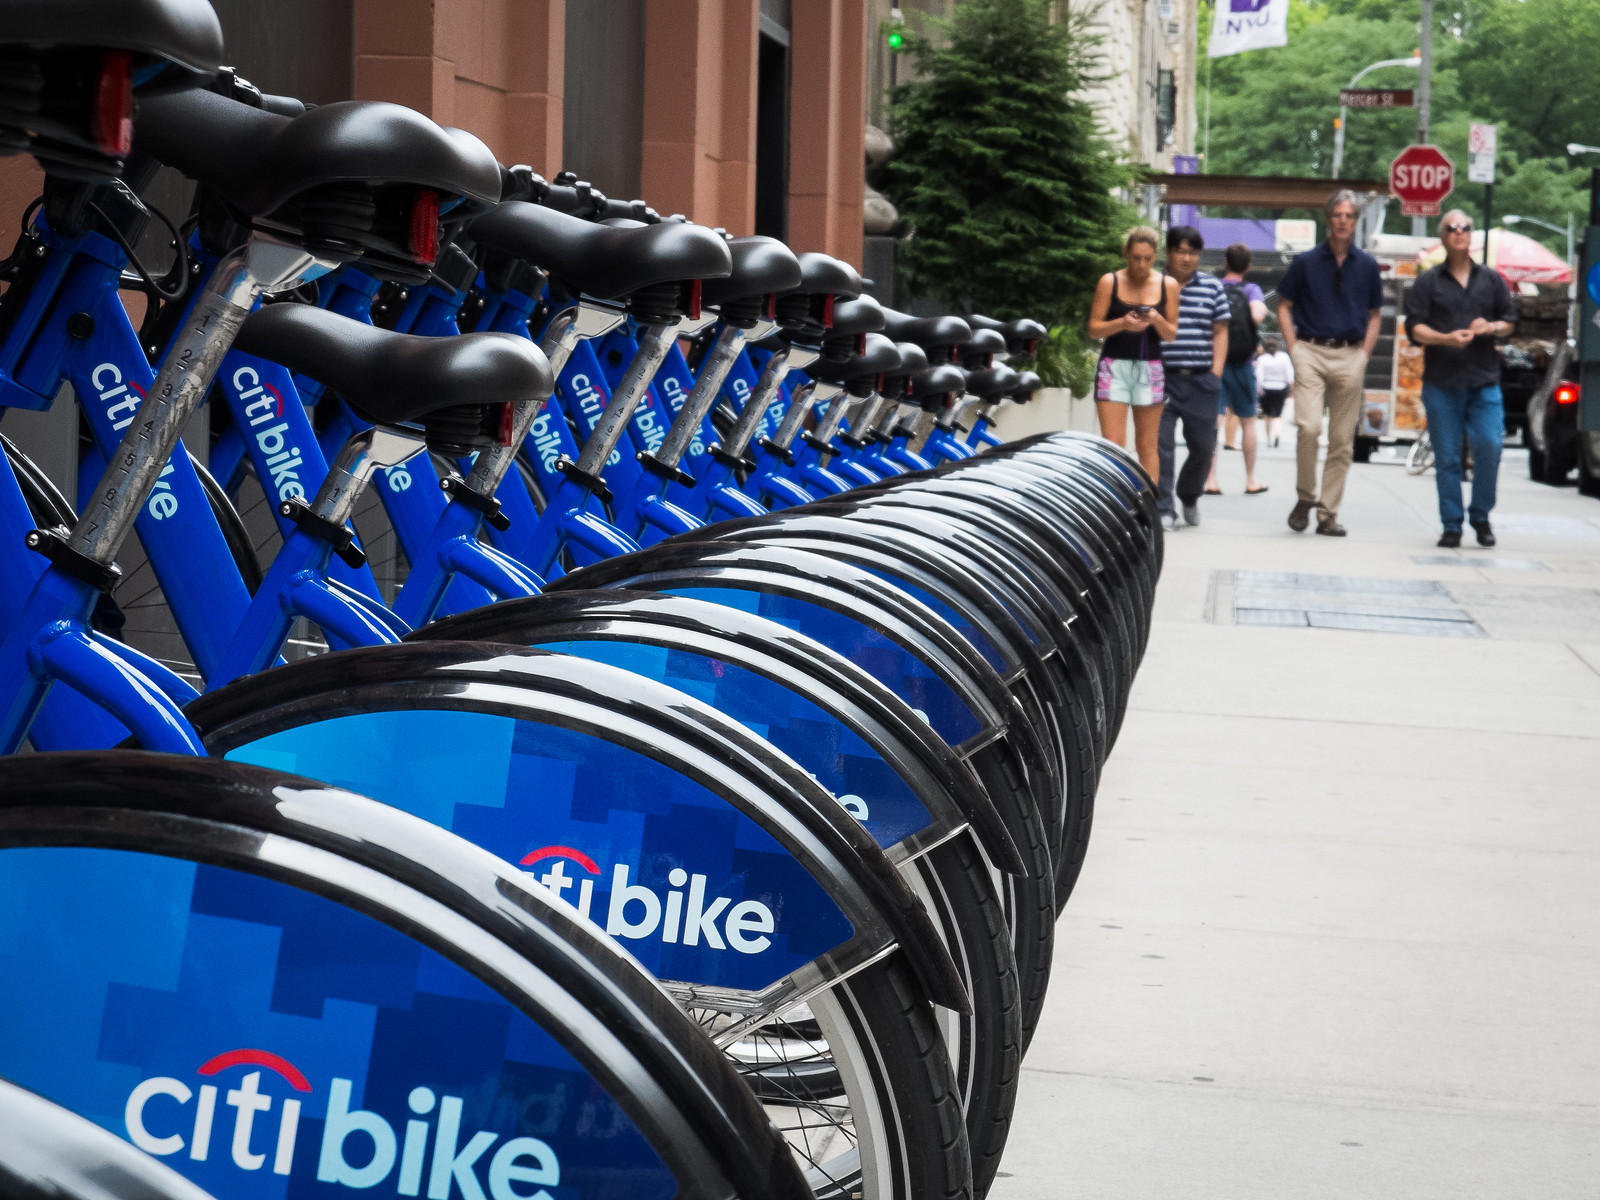 citibike0, citibike1, …, citibikeN by wwward0